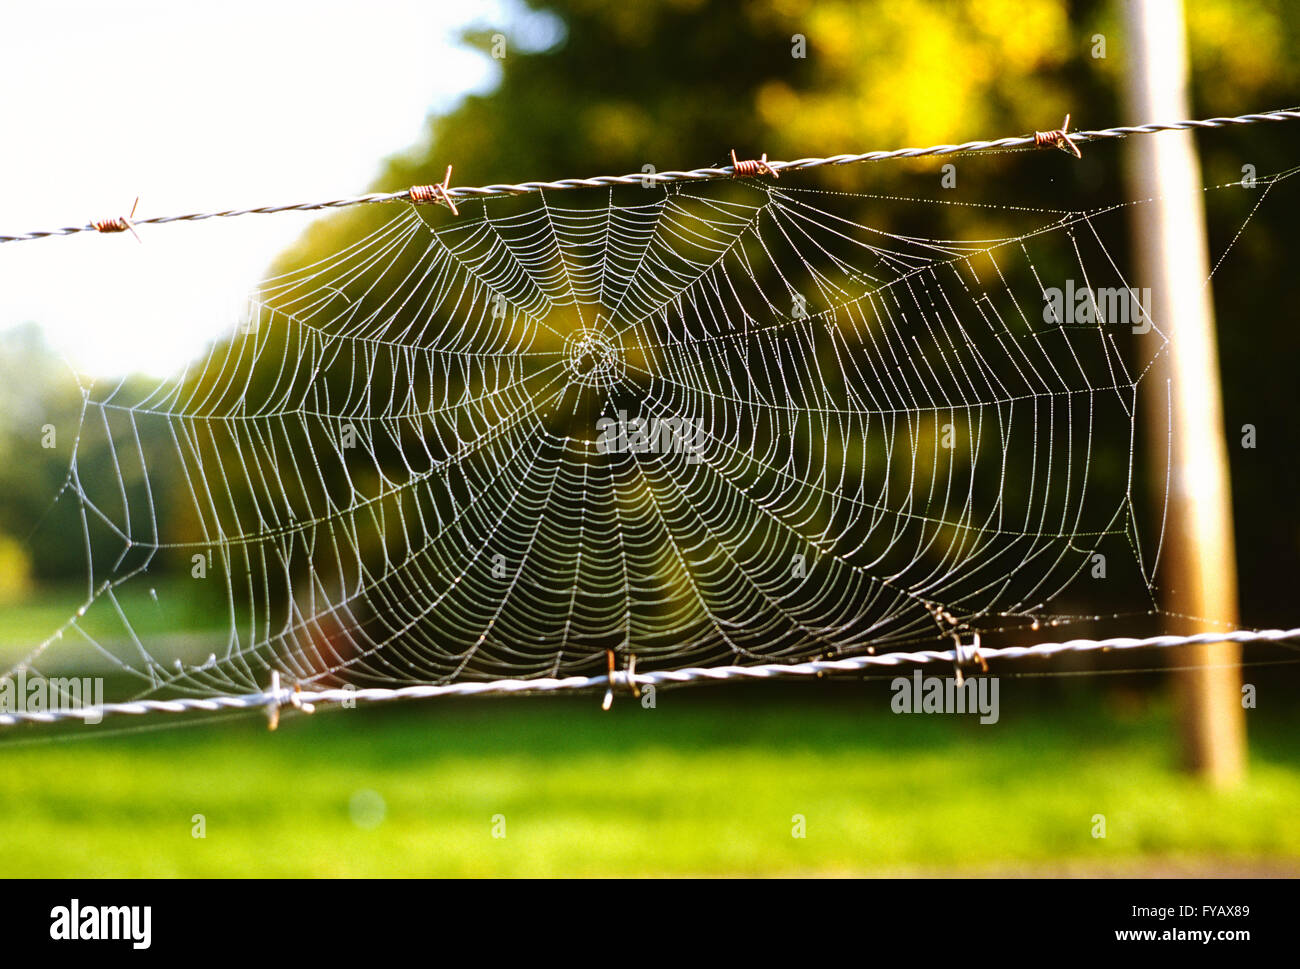 Intricate dew covered spider web in natural outdoor setting - Stock Image